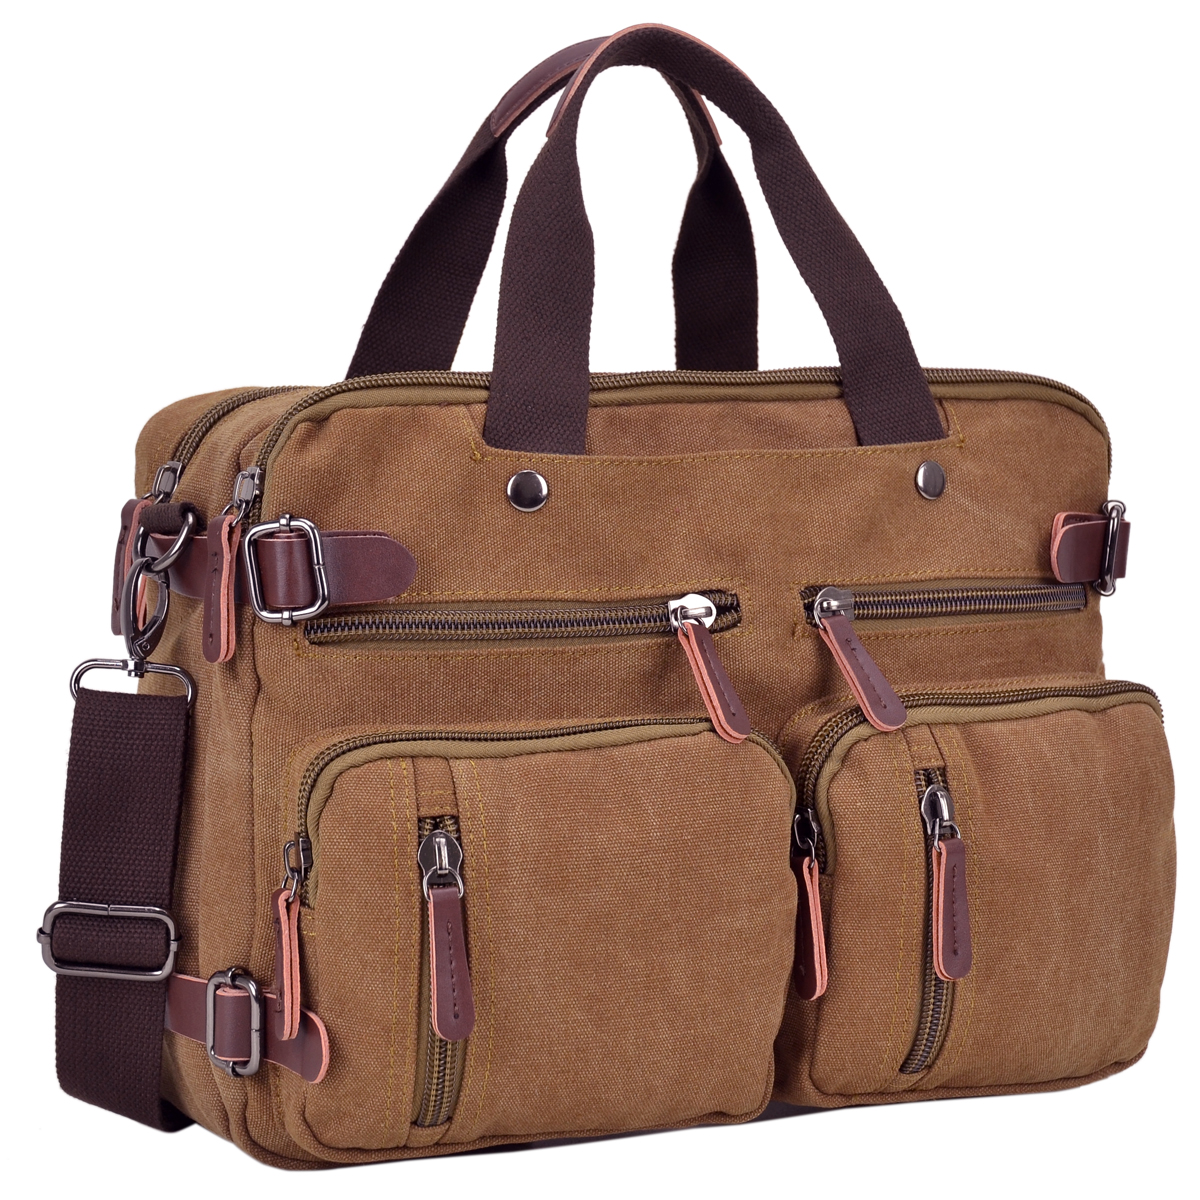 Dasein Vintage Unisex Canvas Multi-purpose Bag- Backpack, Briefcase, Rucksack, Messenger Bag